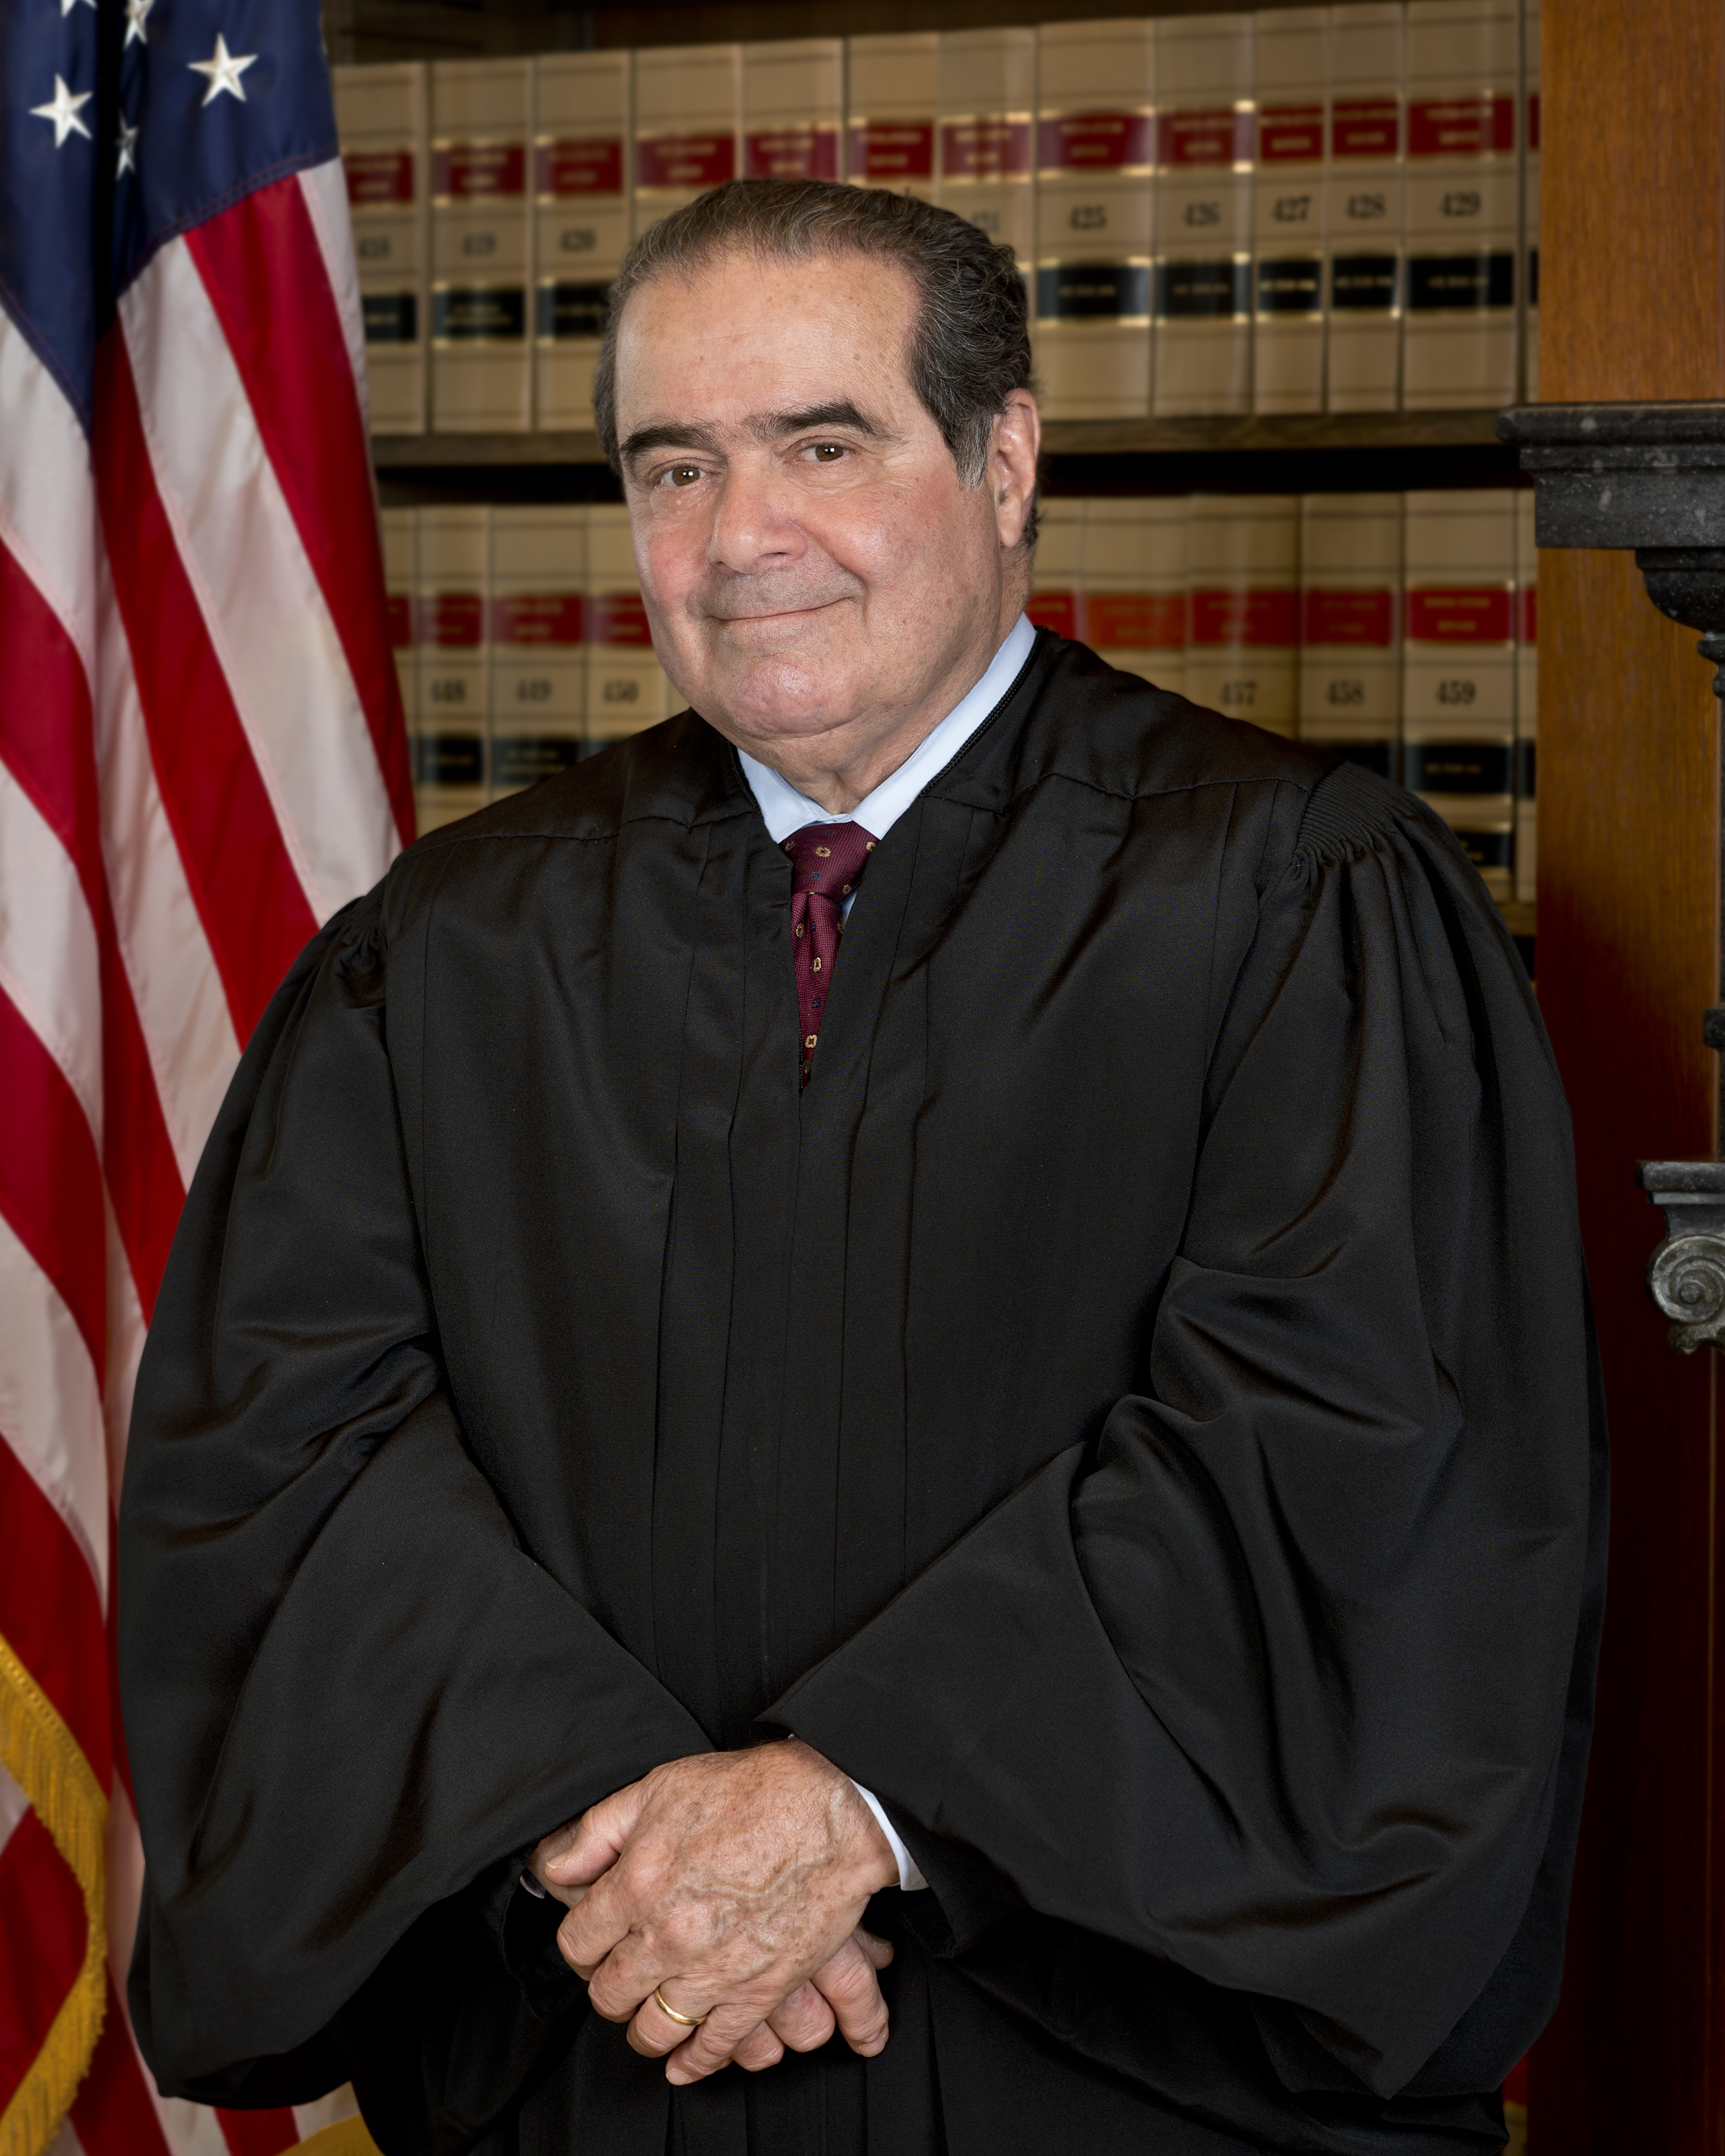 Antonin Scalia Quotes: Judge Scalia Wanted SCOTUS To Strike Down The 13th Amendment